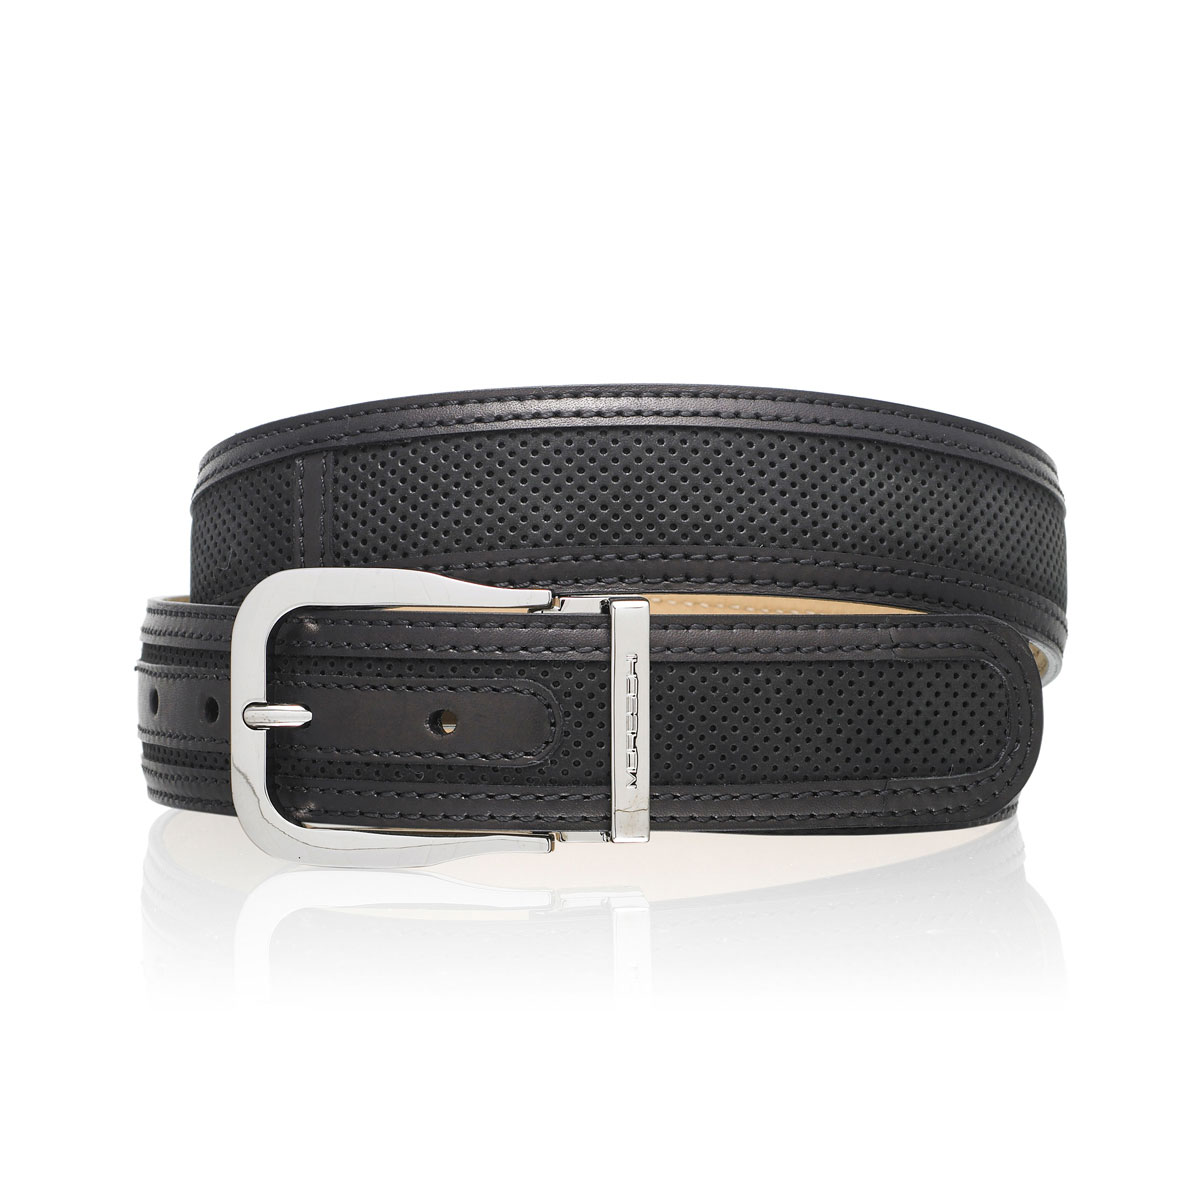 Russell And Bromley PORTOFINO Perforated Matching Belt